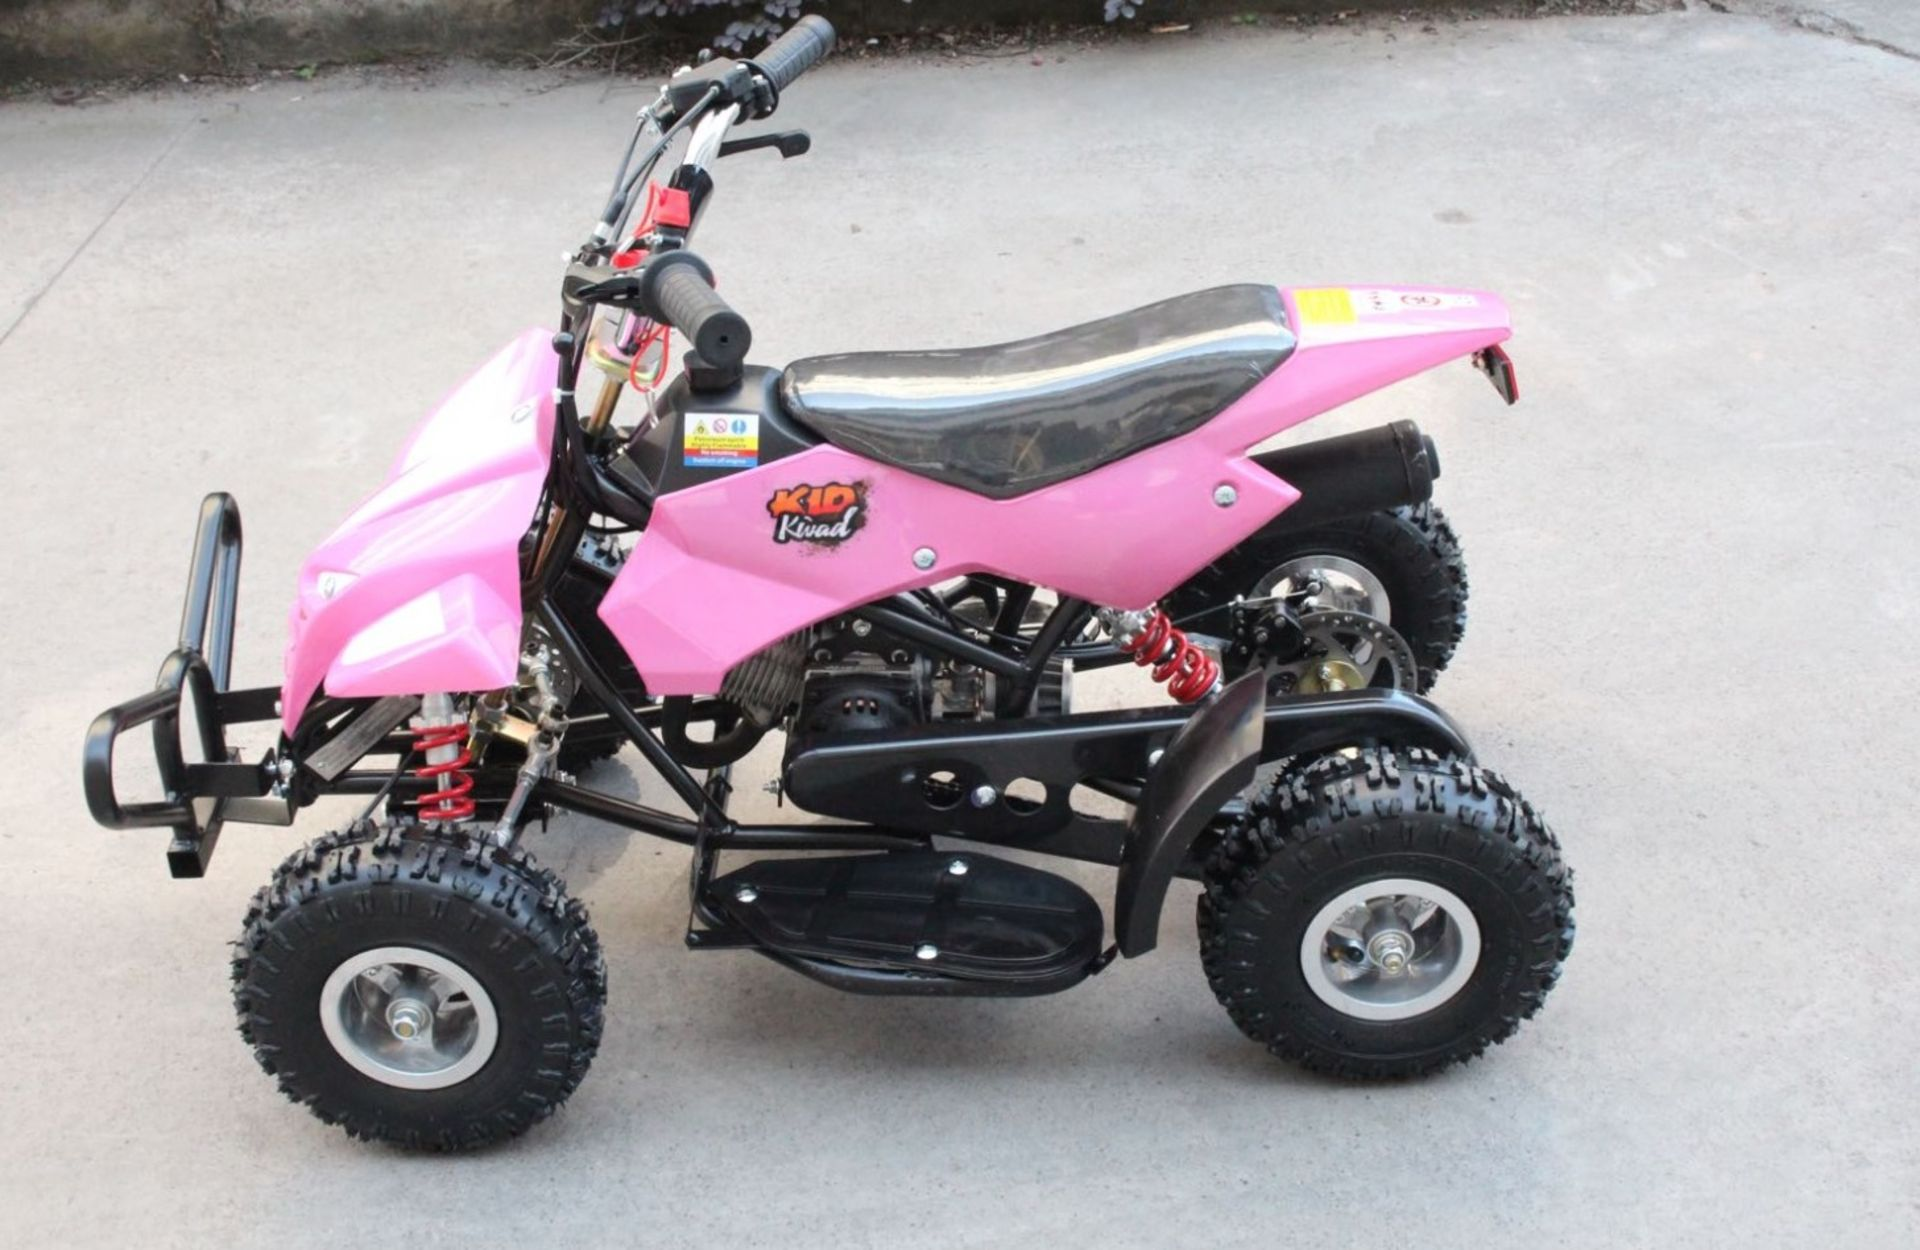 + VAT Brand New 50cc Mini Quad Bike FRM - Colours May Vary - Picture May Vary From Actual Item - Image 2 of 9